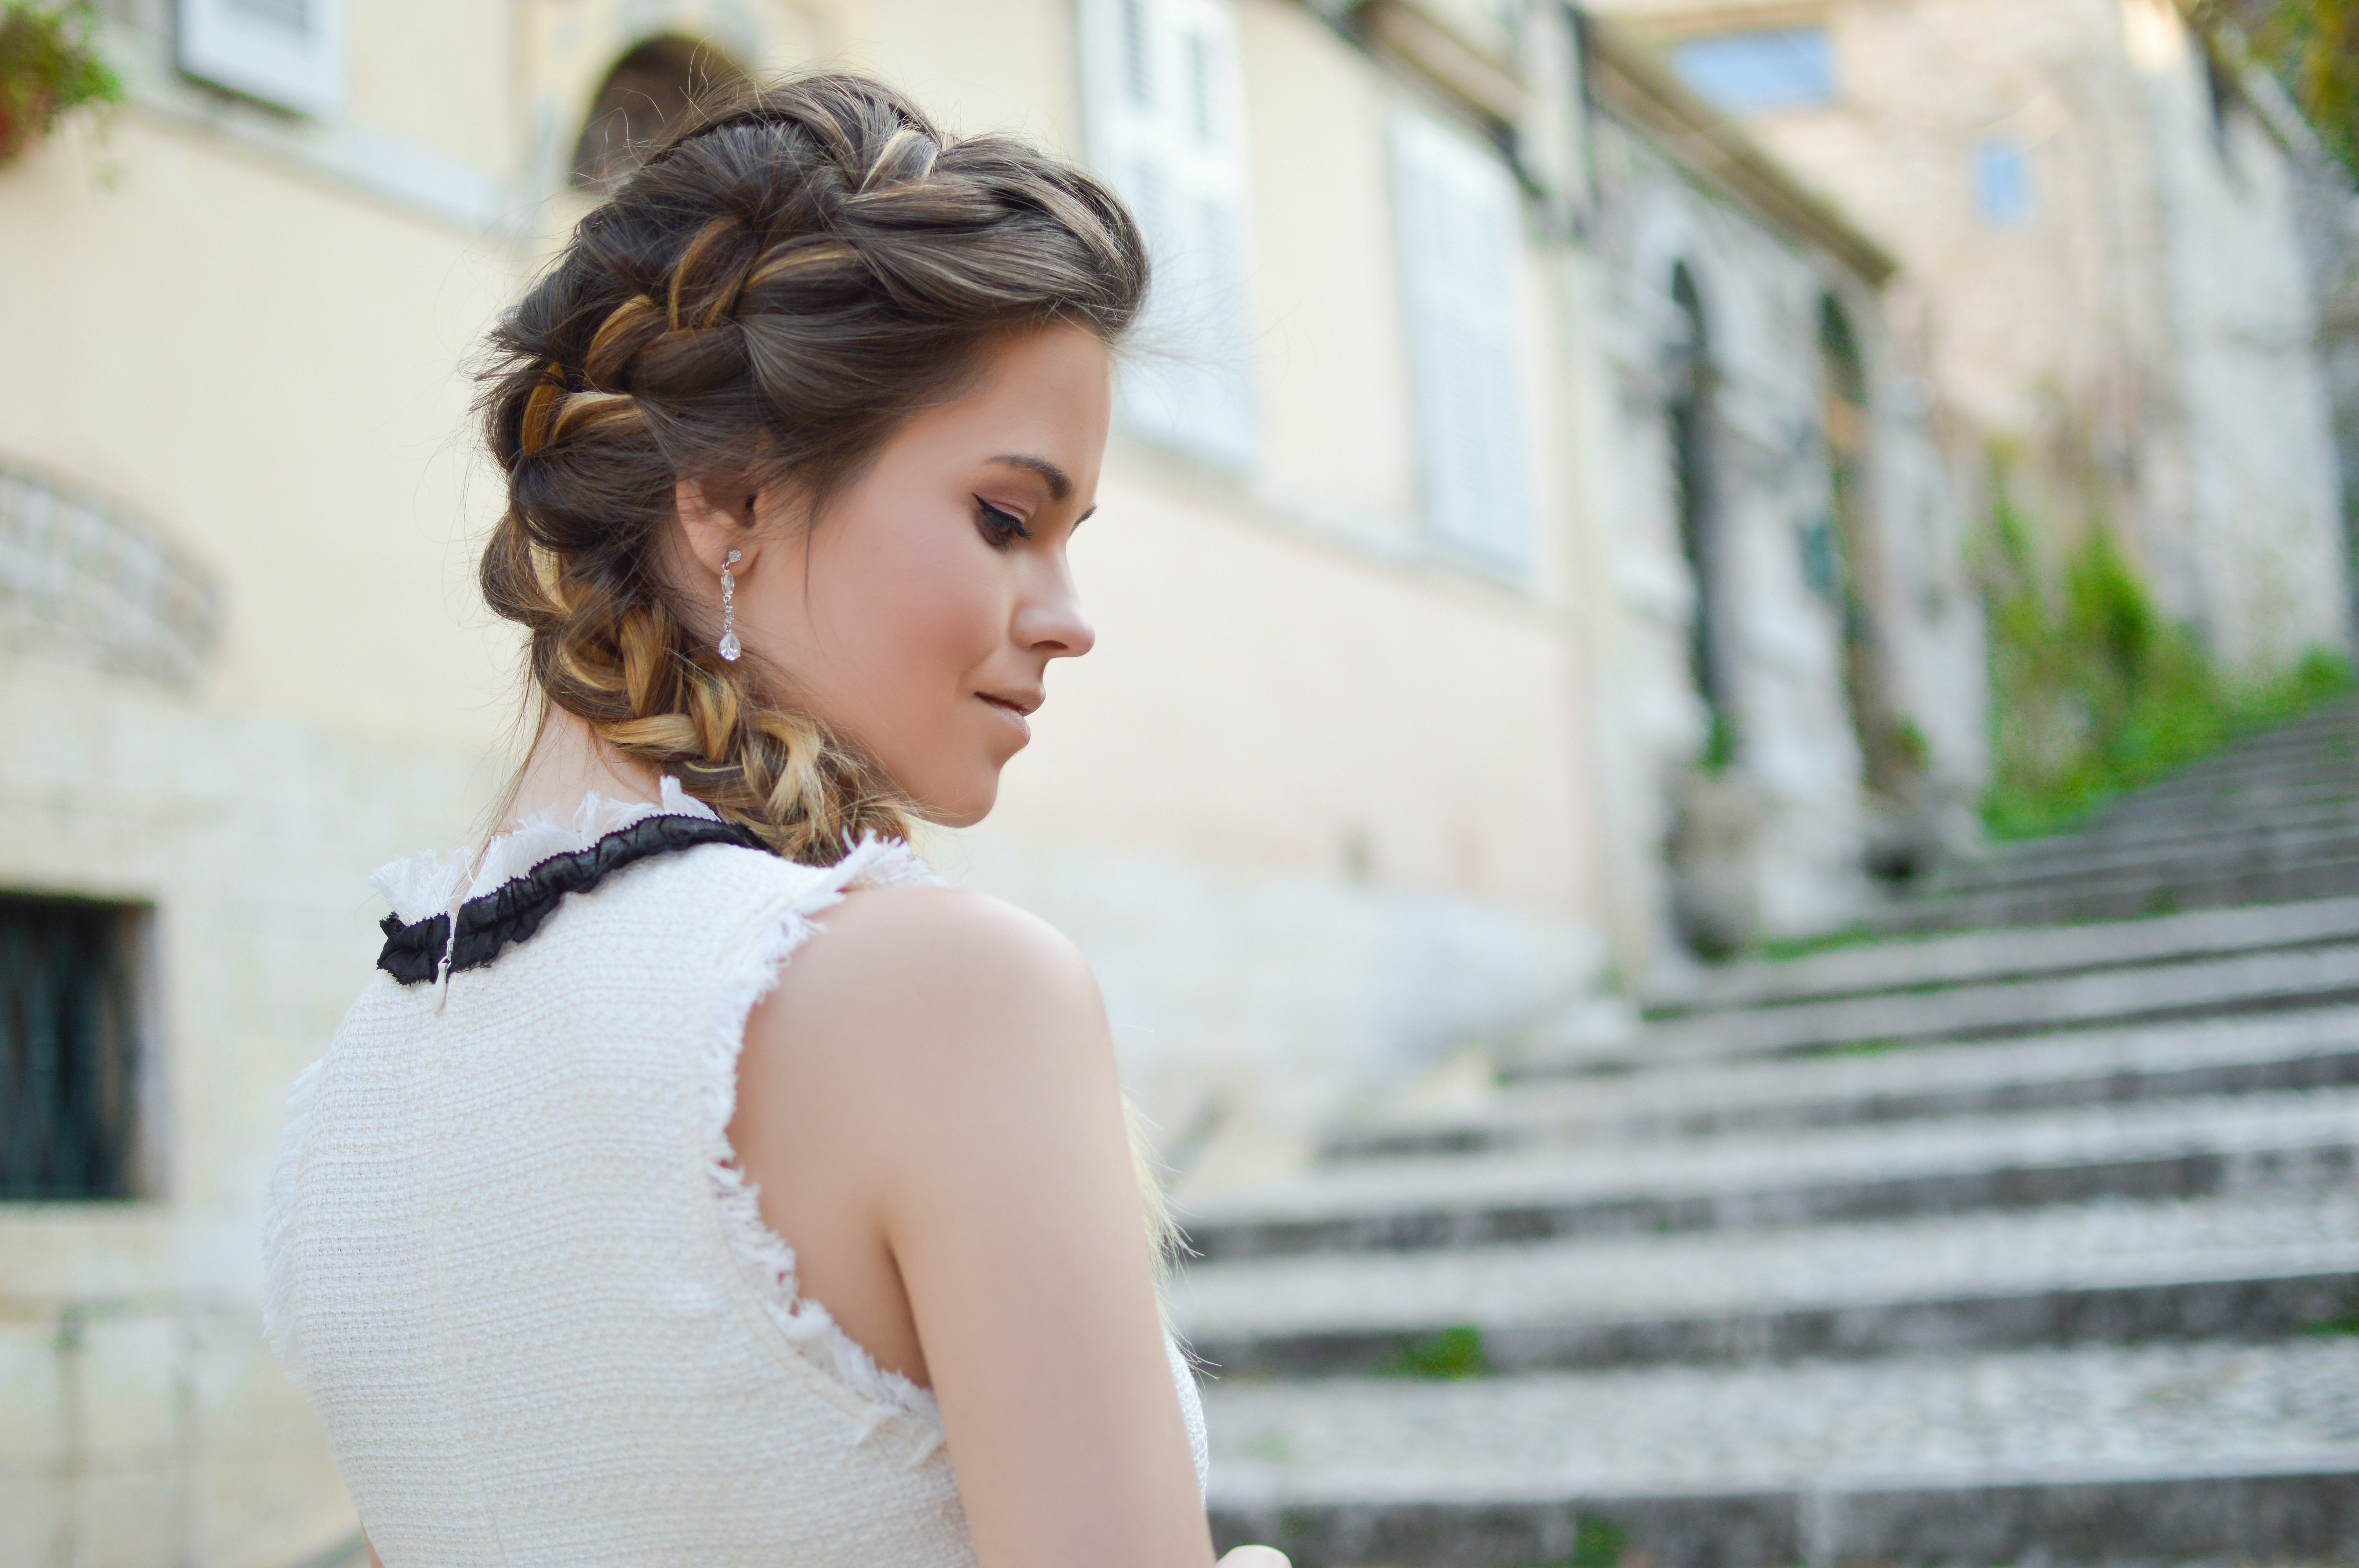 Woman with a french braid hairstyle smiling on a staircase